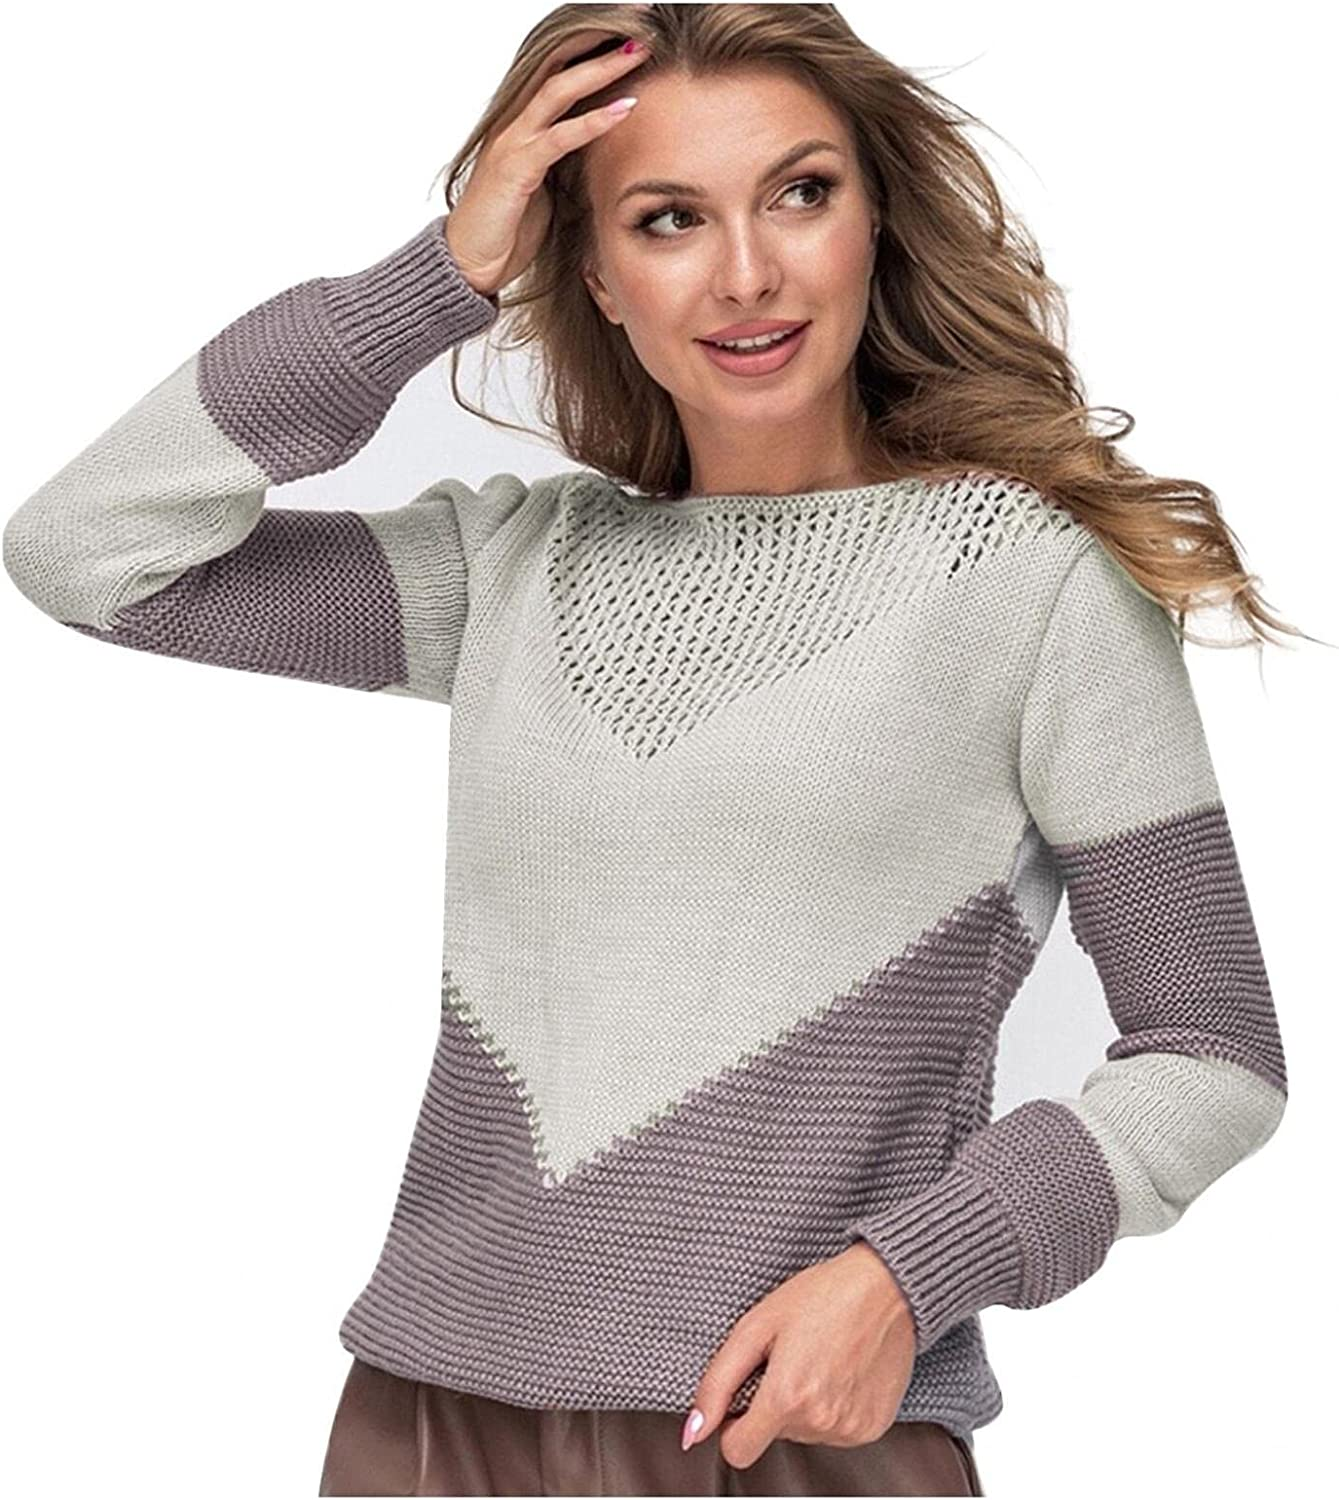 Toeava Sweaters for Women Long Sleeve Crewneck Hollow Out Color Block Ribbed Knit Sweater Casual Pullover Jumper Tops